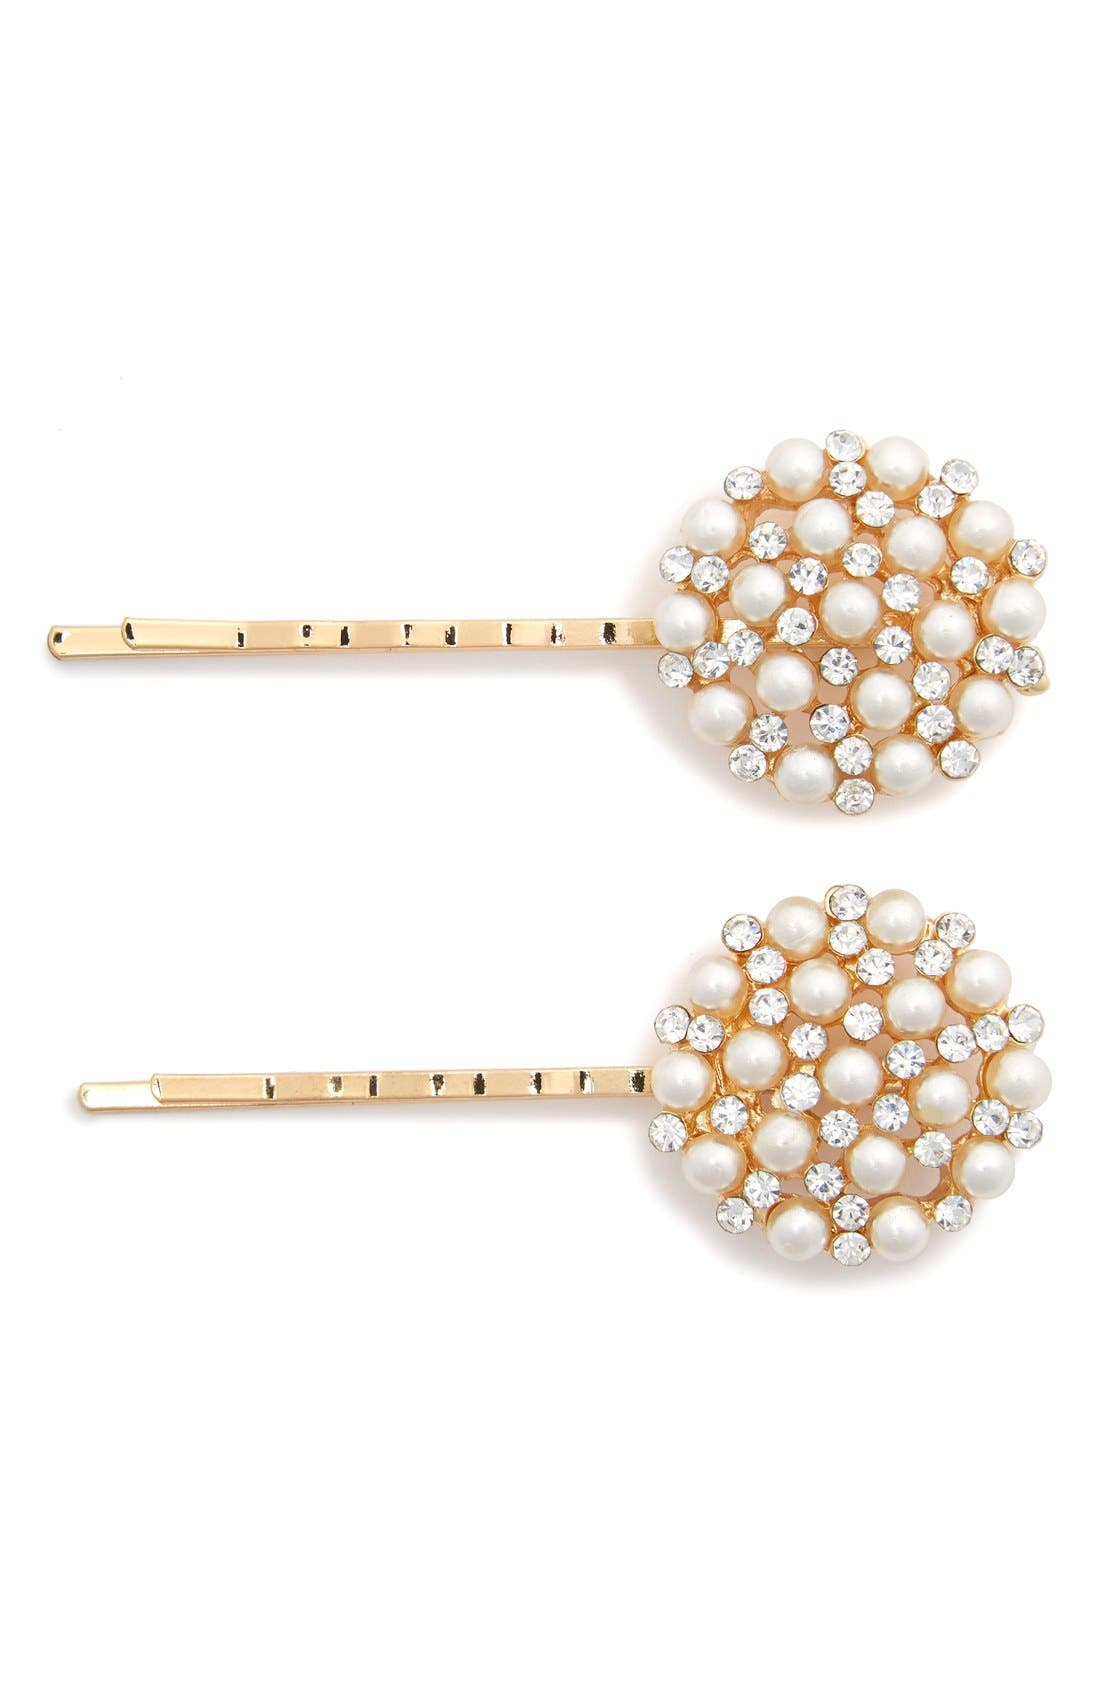 Alternate Image 1 Selected - Tasha 'Cute as a Button' Bobby Pins (2-Pack)